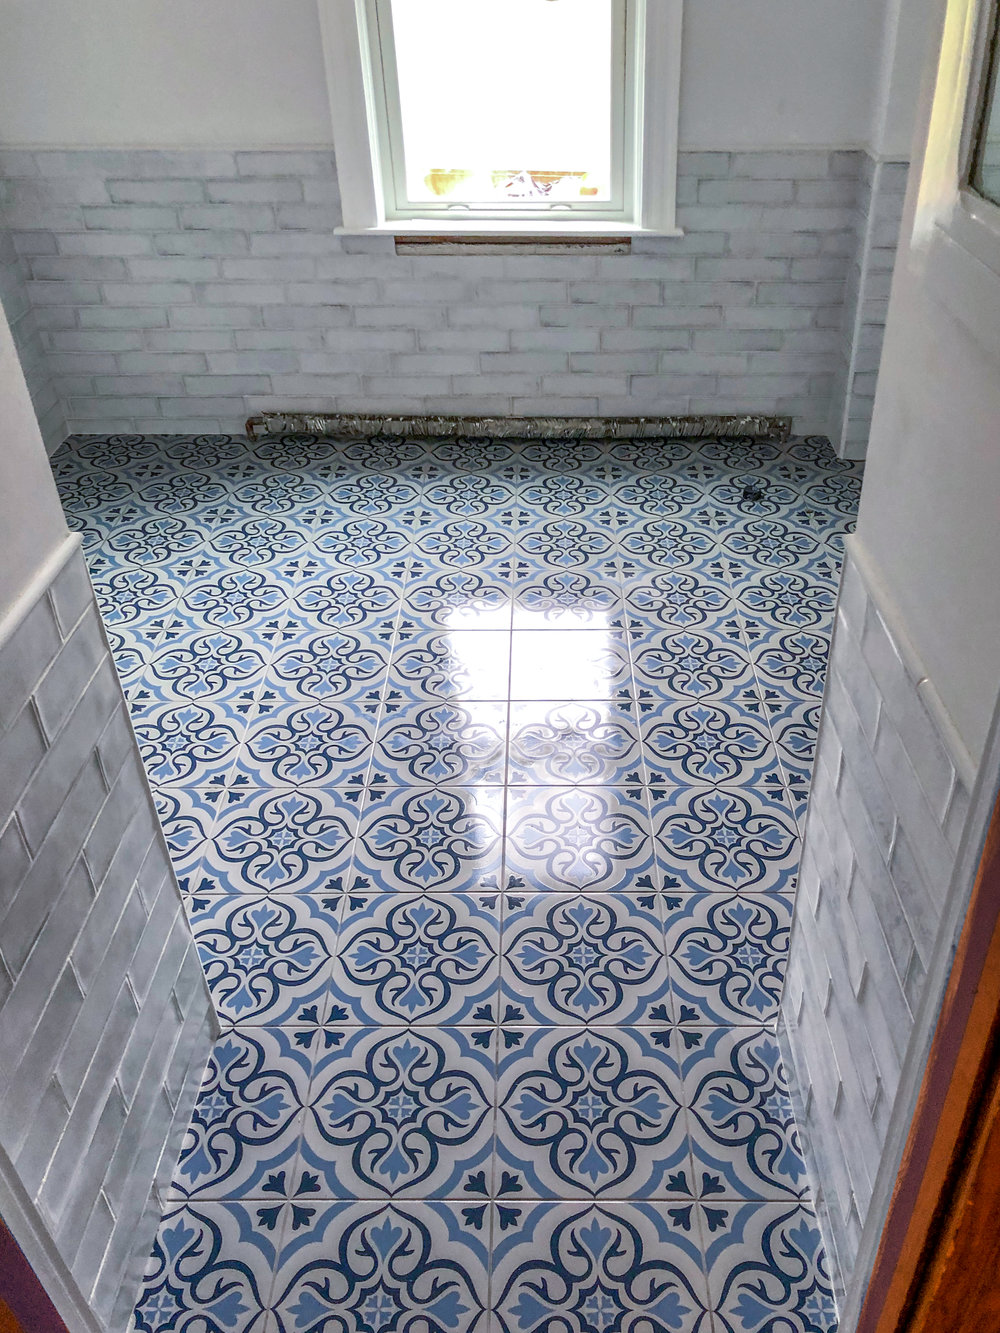 Hand-made ceramic tile with a glass subway wall tile.